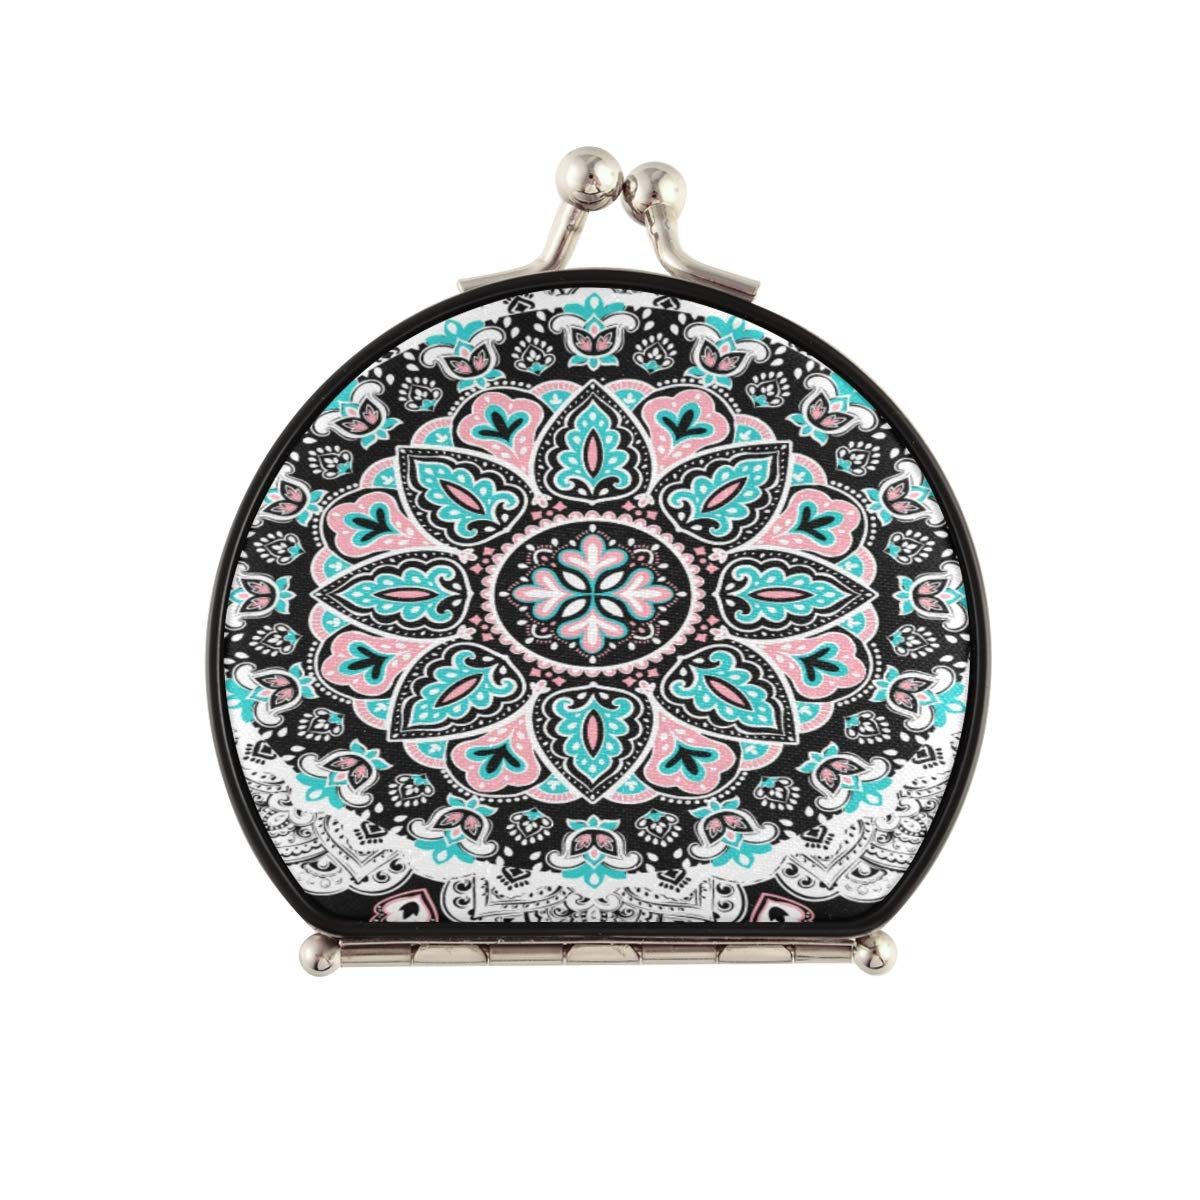 Magnifying wholesale Compact Fashion Cosmetic Mirror Floral Paisley Medalli Indian